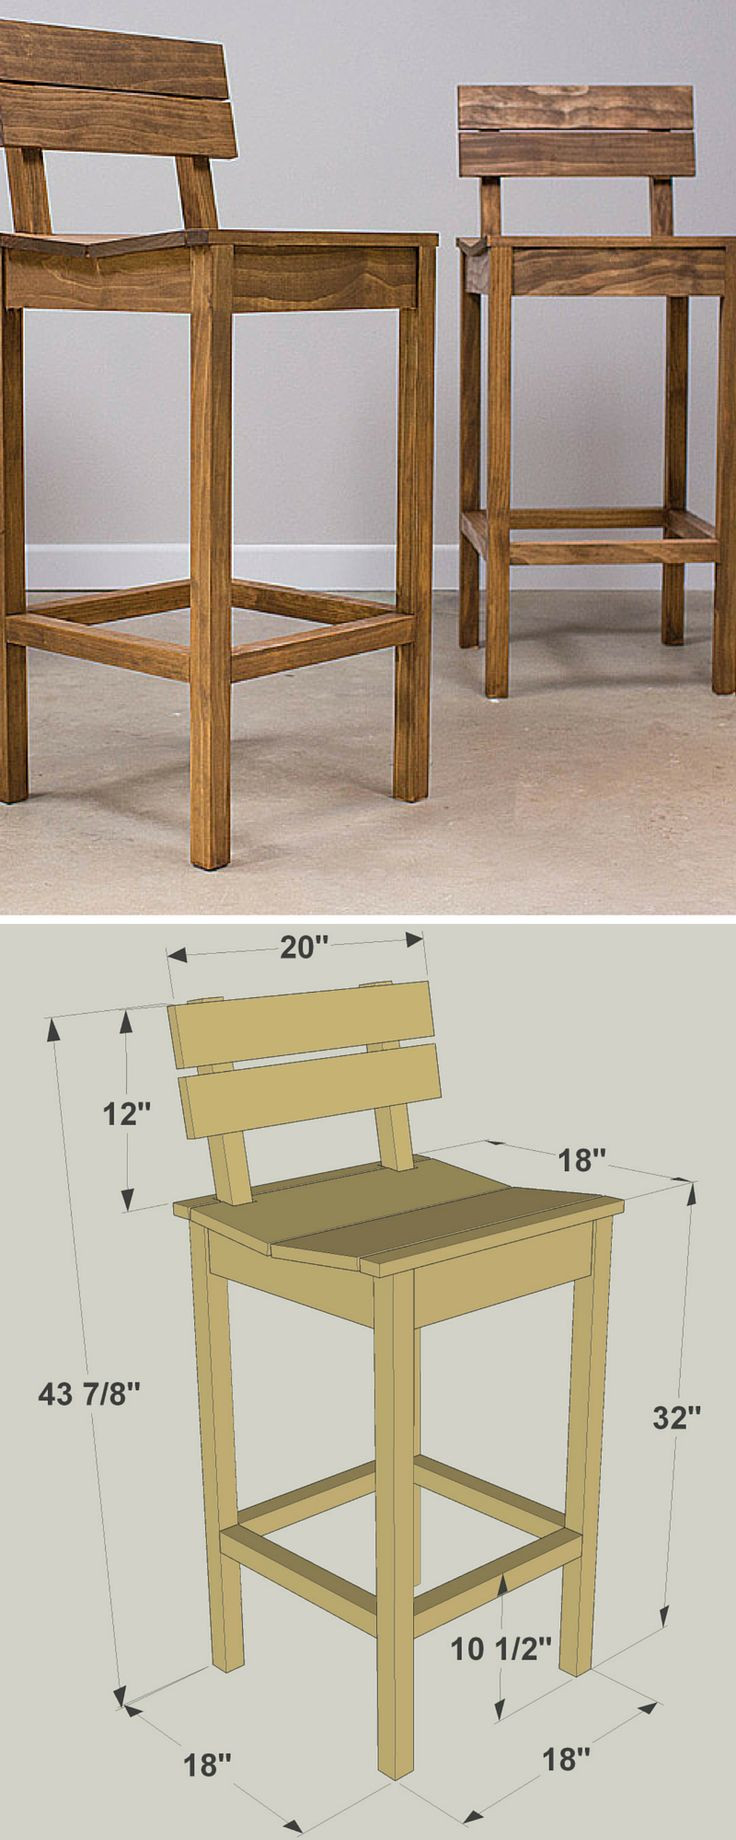 Best ideas about DIY Wooden Bar Stools . Save or Pin Best 25 Pallet bar stools ideas on Pinterest Now.